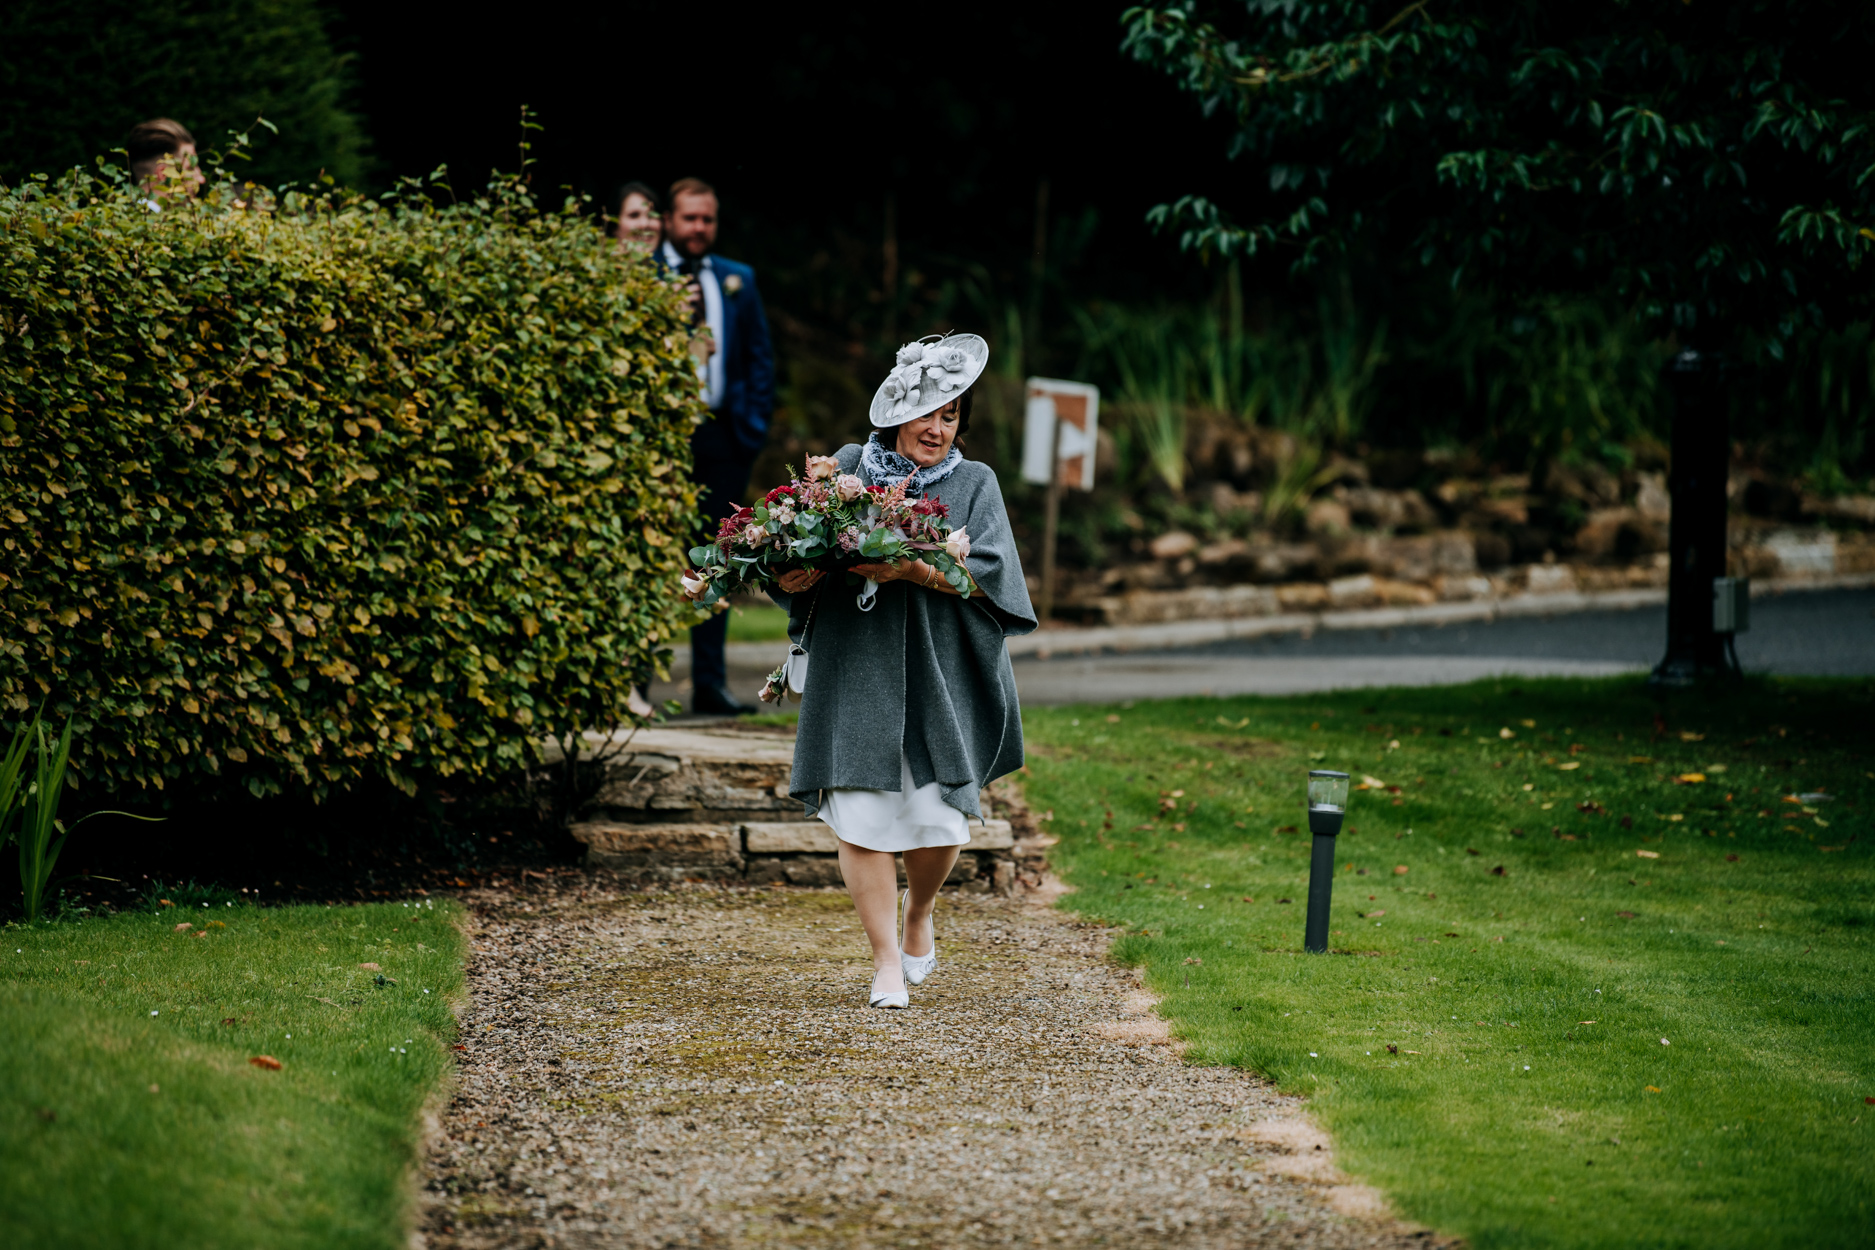 Wedding Image - Hackness Grange Hotel Scarborough | The mother of the bride arrives carrying flowers